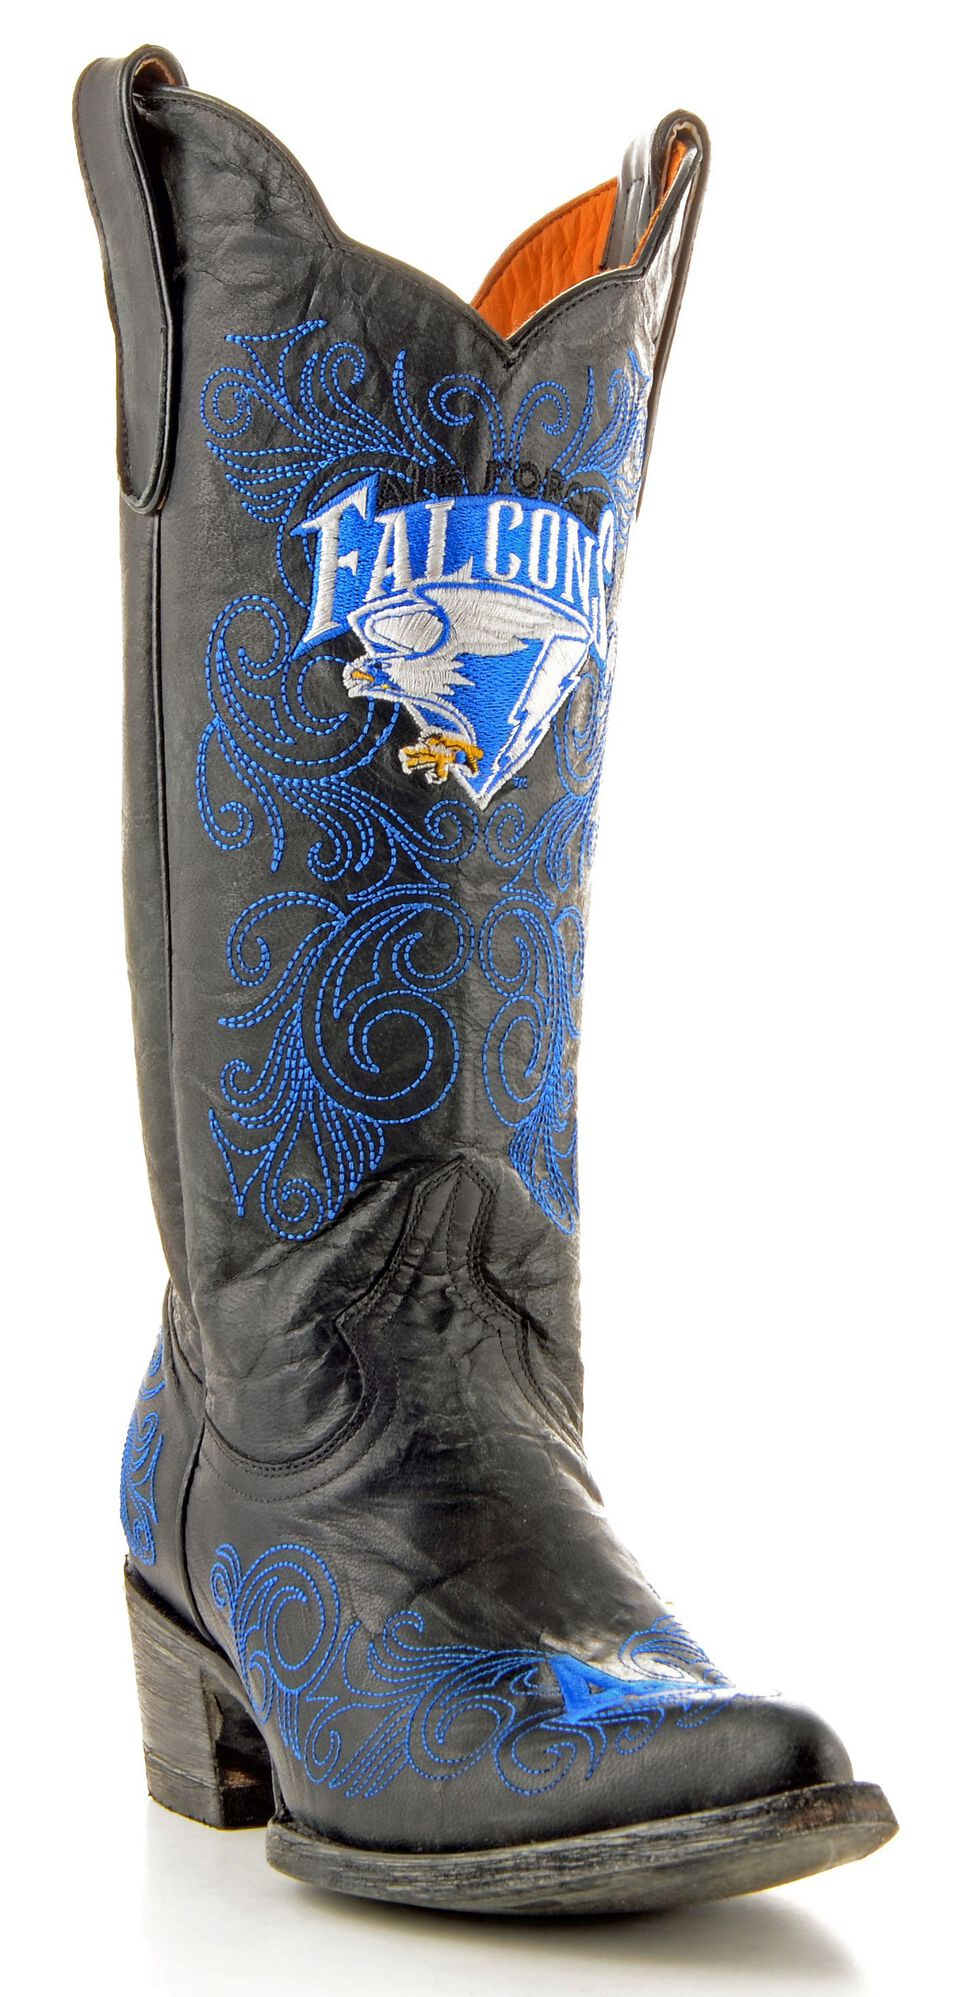 Gameday United States Air Force Academy Cowgirl Boots - Pointed Toe, Black, hi-res